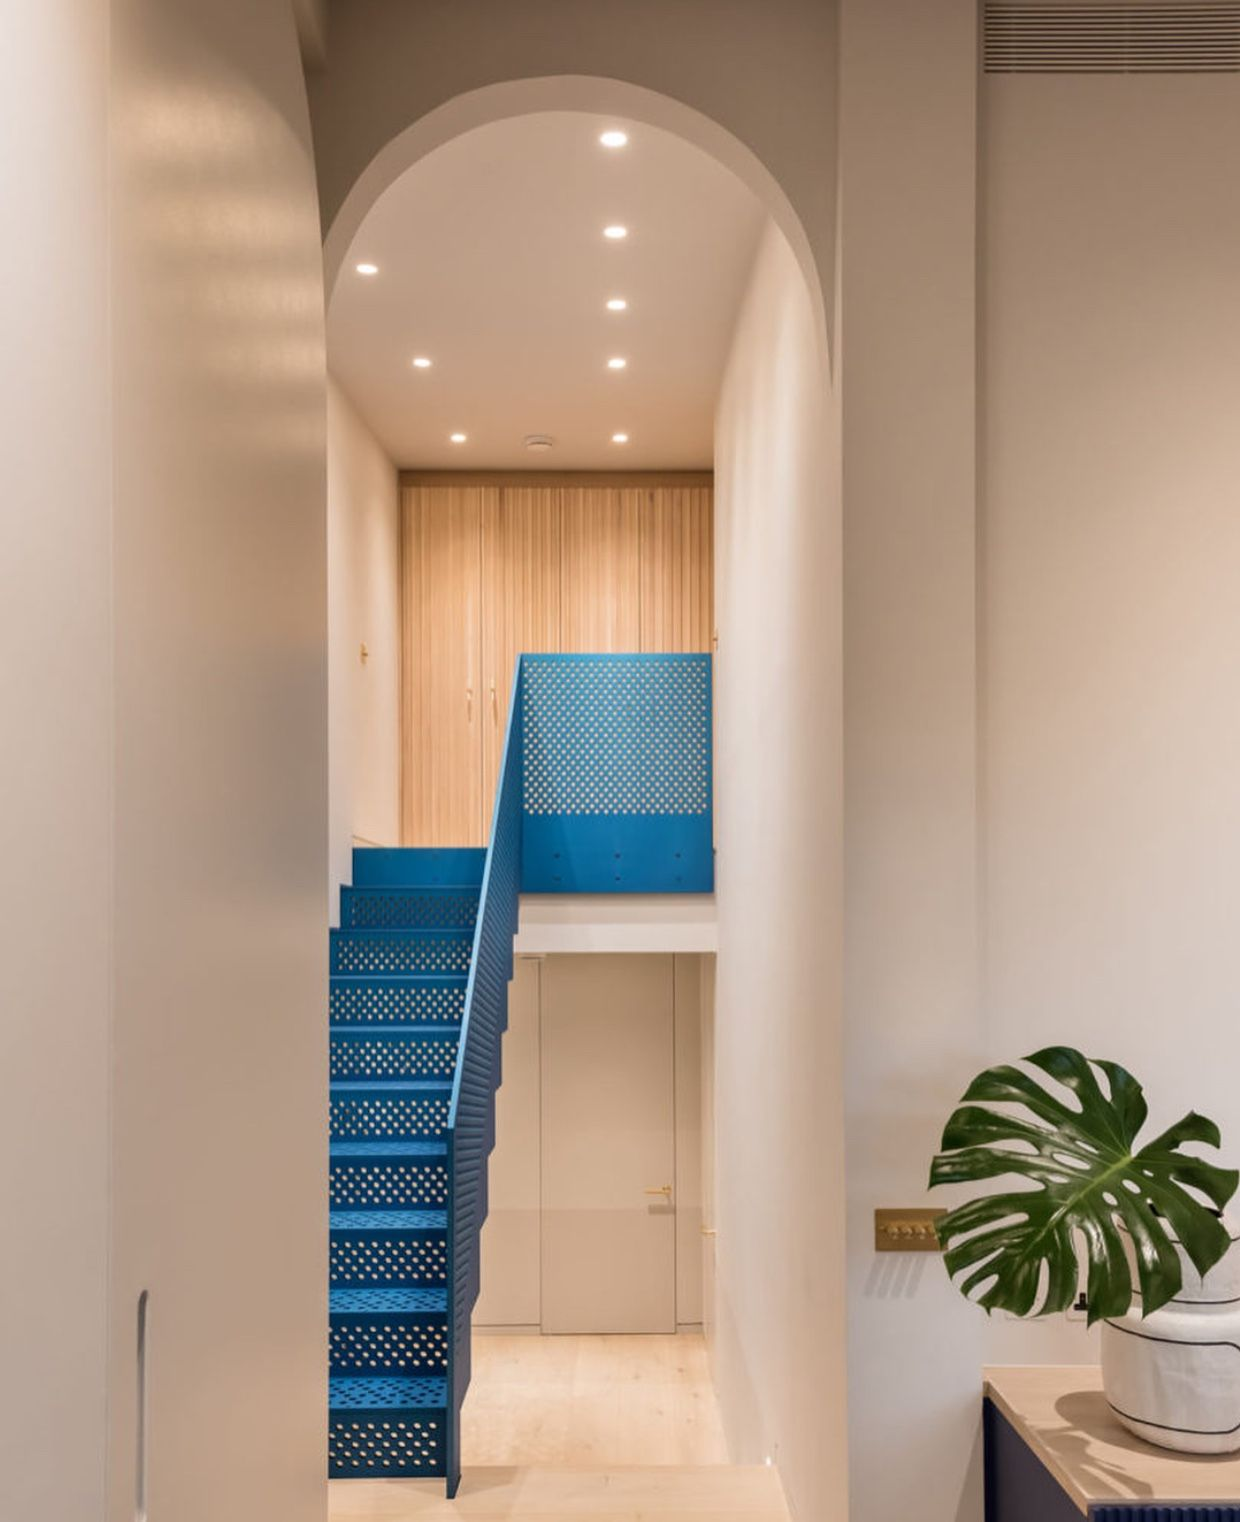 Home interior stairs pin by denise morales on misc  pinterest  apartment design